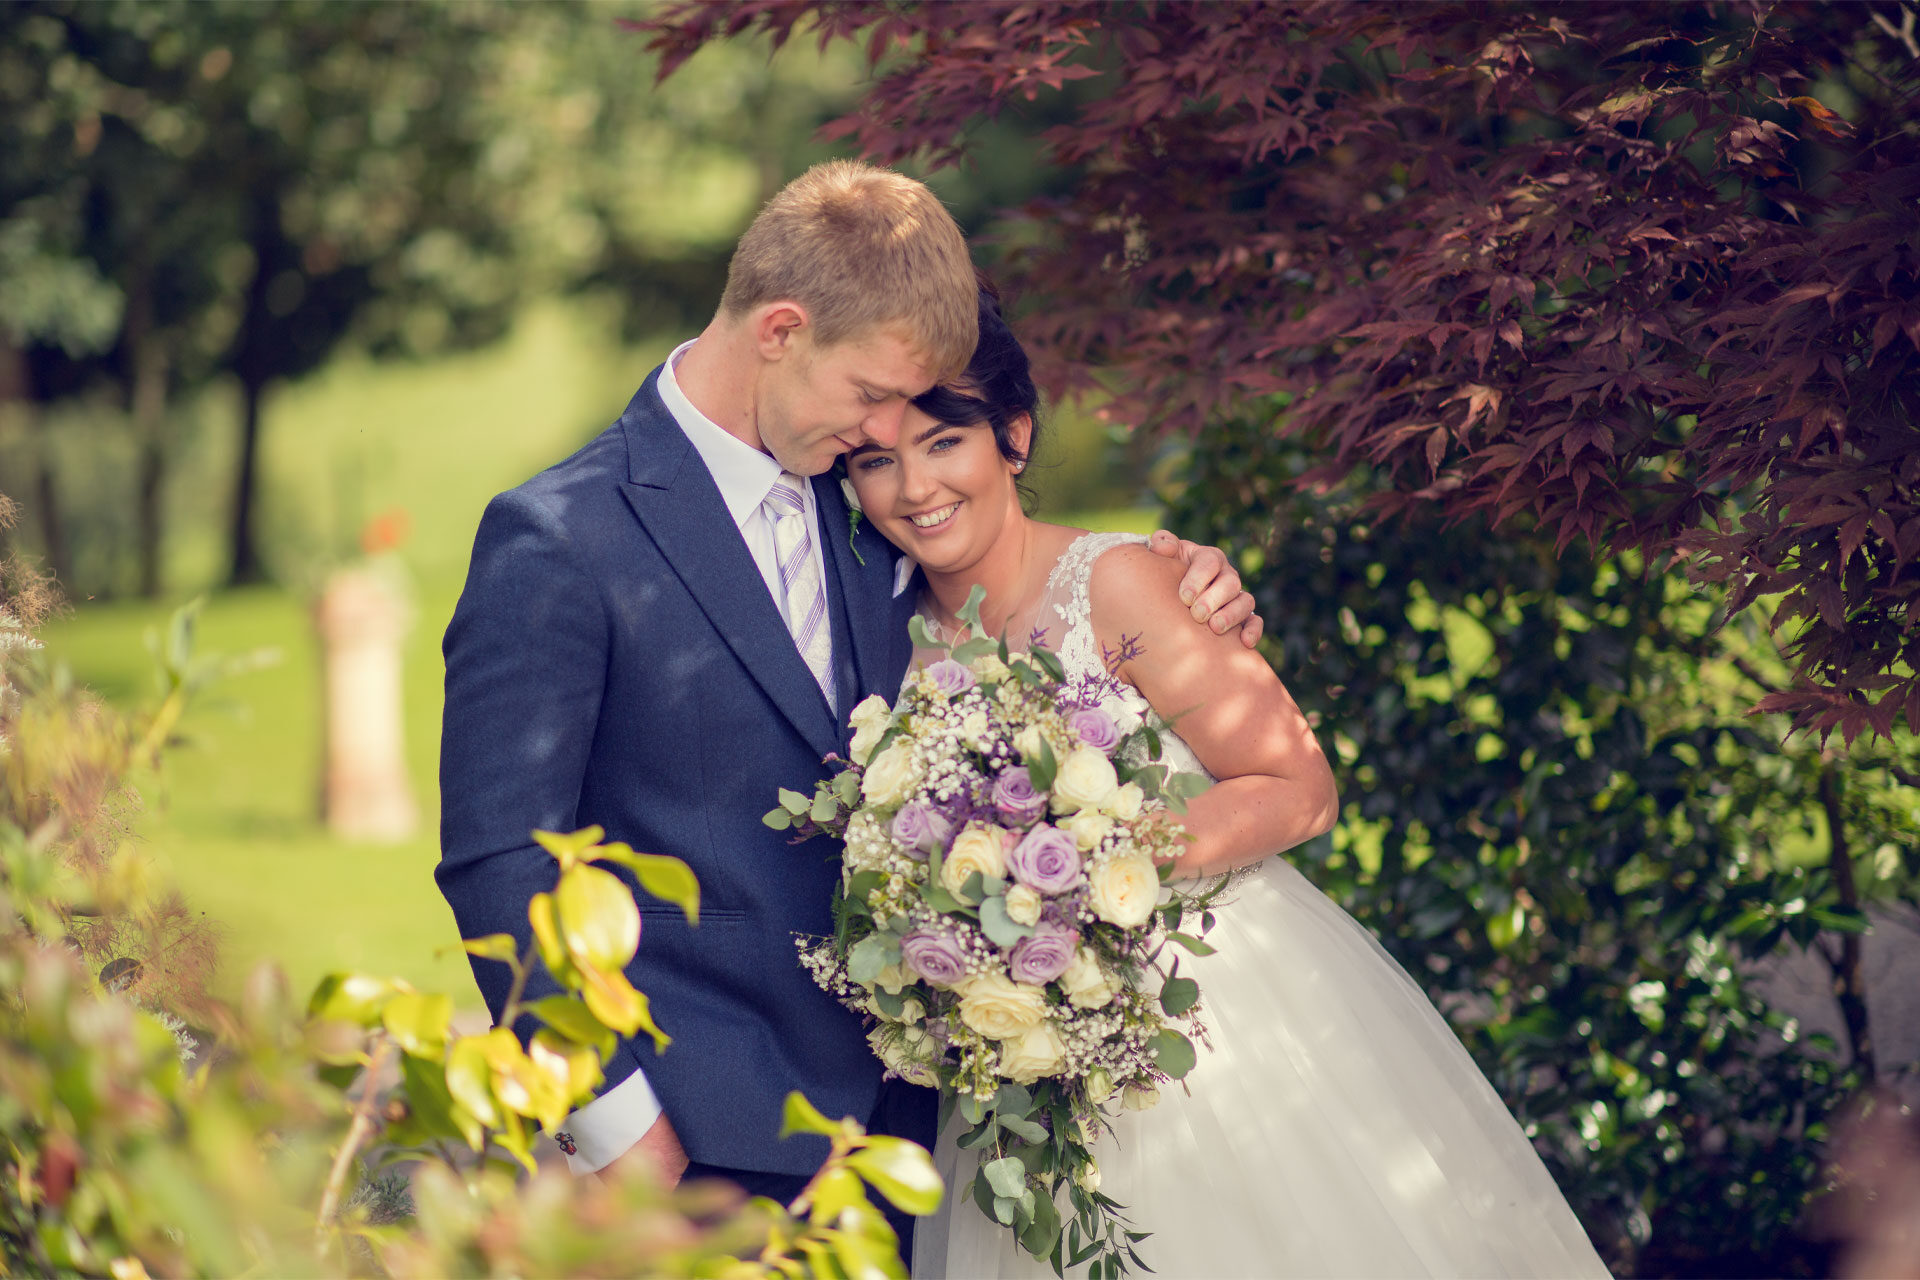 Photo of Laura and Samuel on their wedding day, captured in the grounds of Corick House Hotel and Spa, Clogher, Co. Tyrone, Northern Ireland.